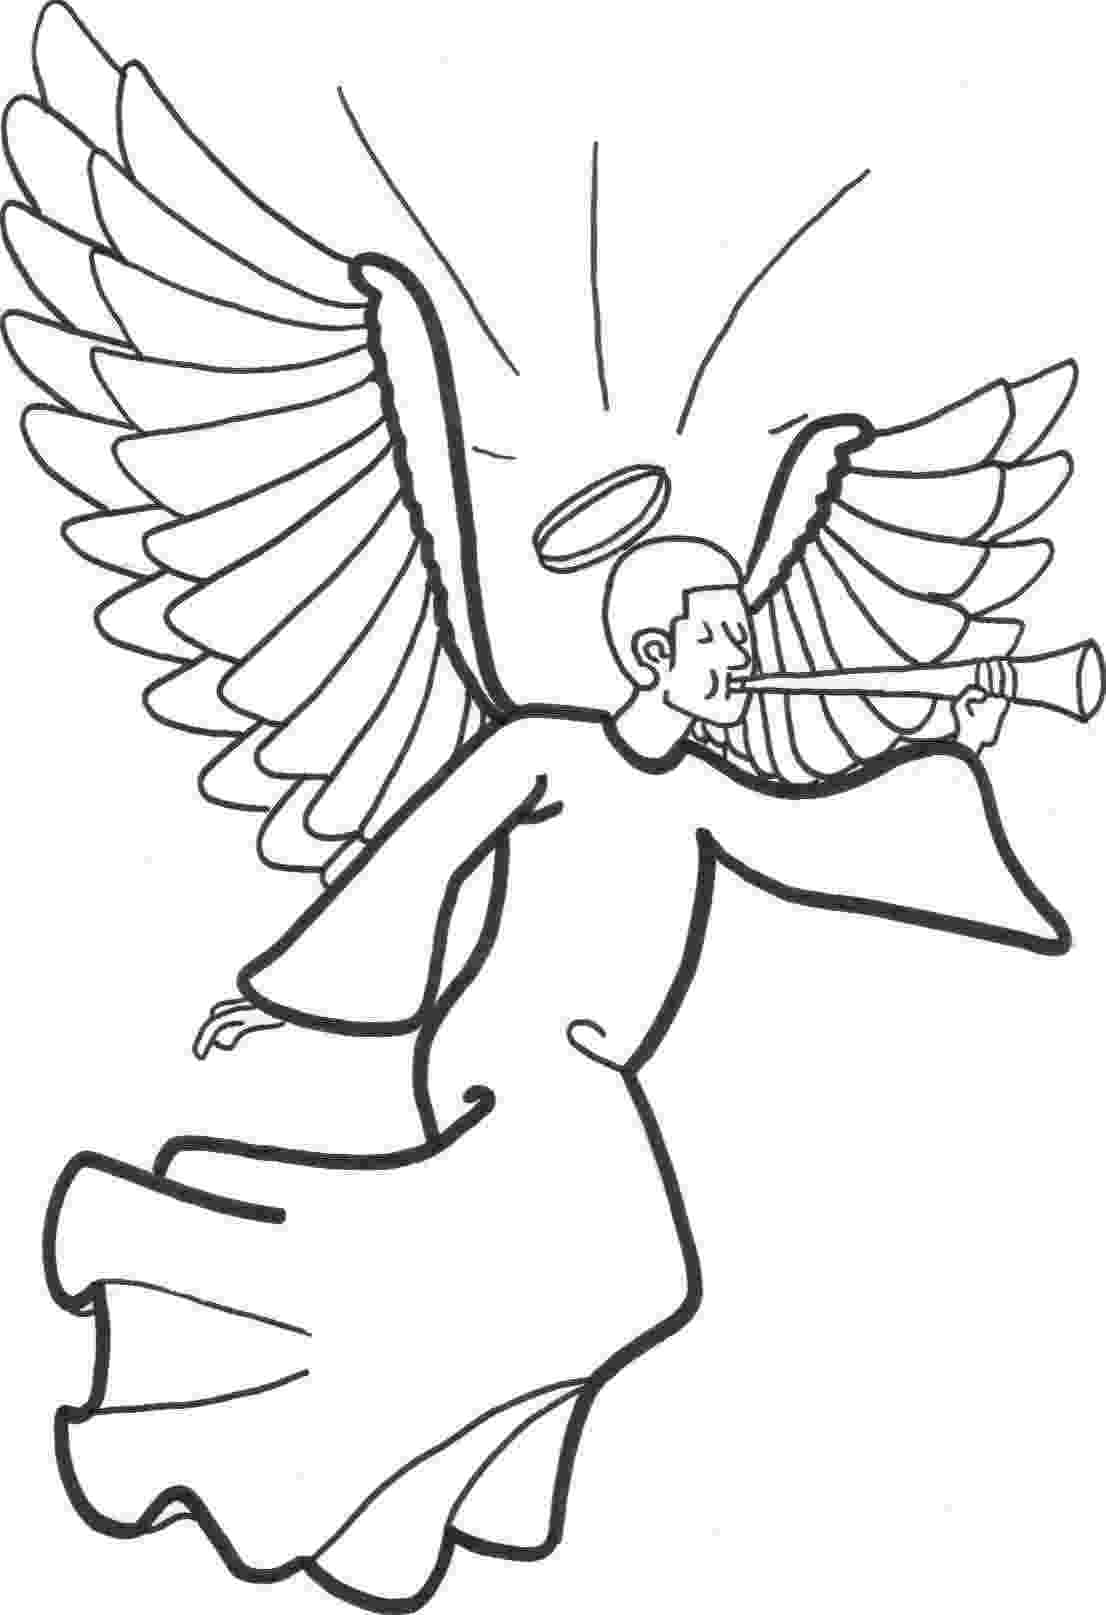 angel pictures to color free printable angel coloring pages for kids angel to pictures color